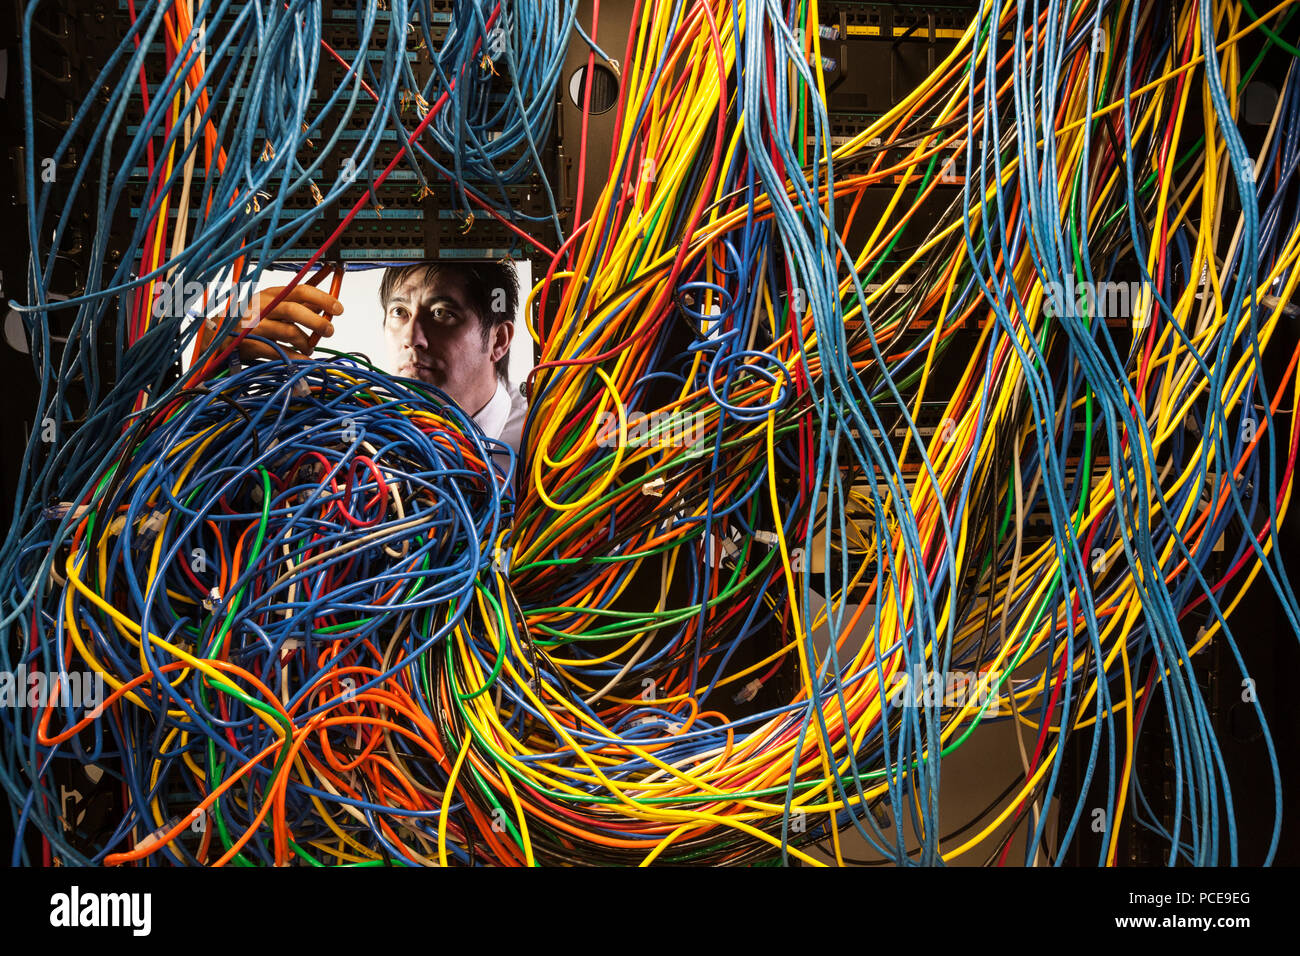 Asian Male Technician Working On A Tangled Mess Of Cat 5 Cables In Wiring Server Room